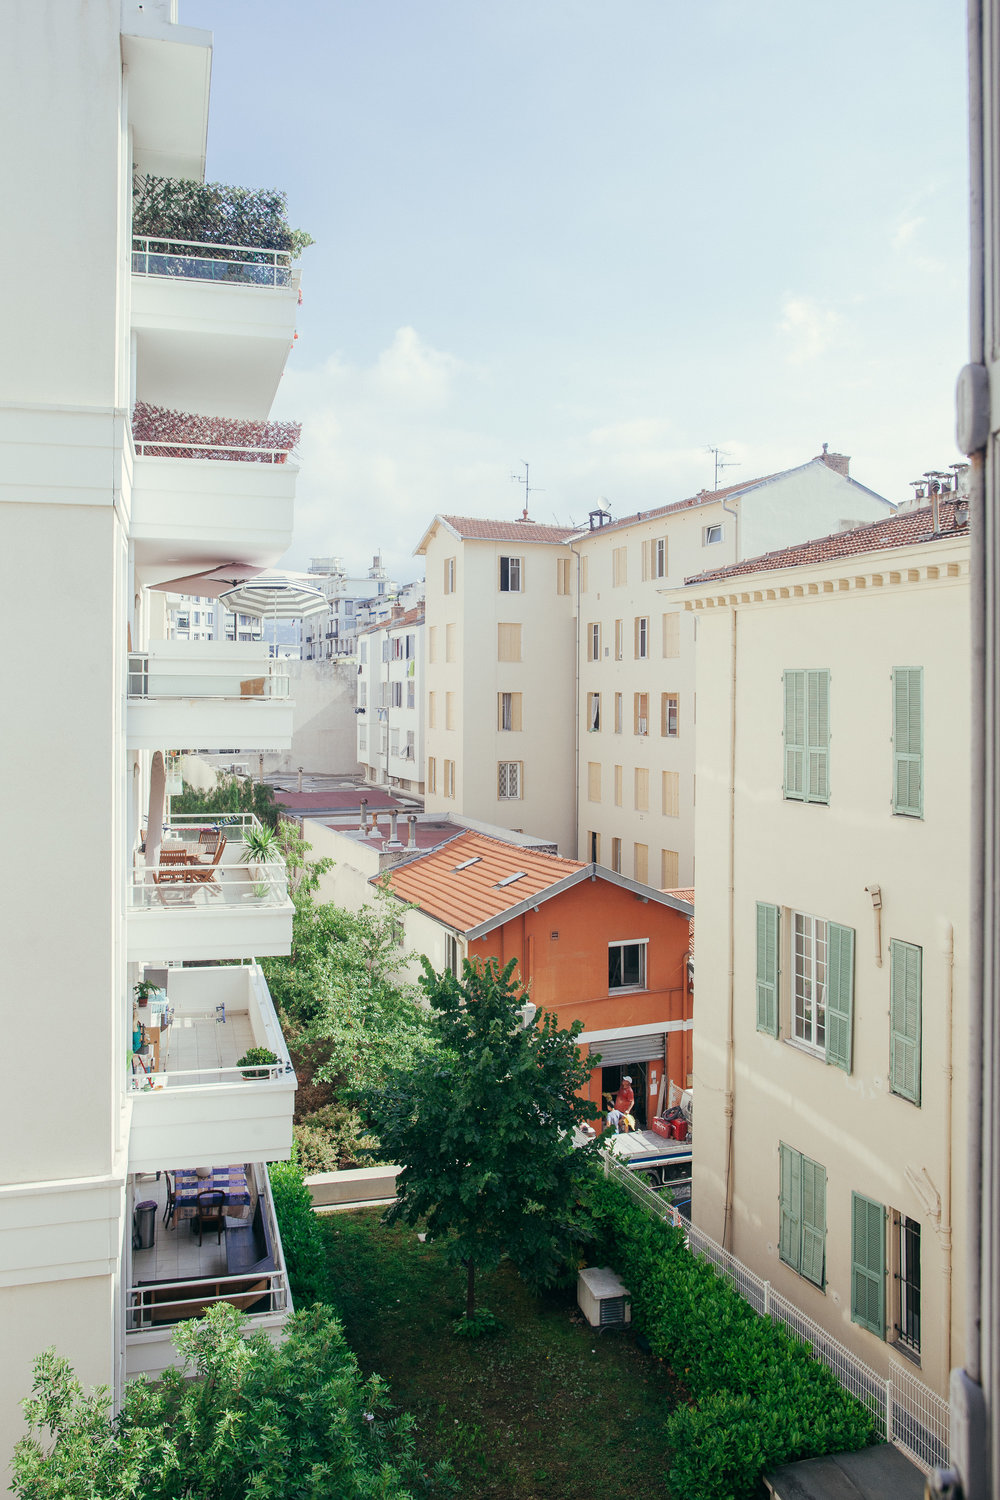 The view from our apartment in Nice, France